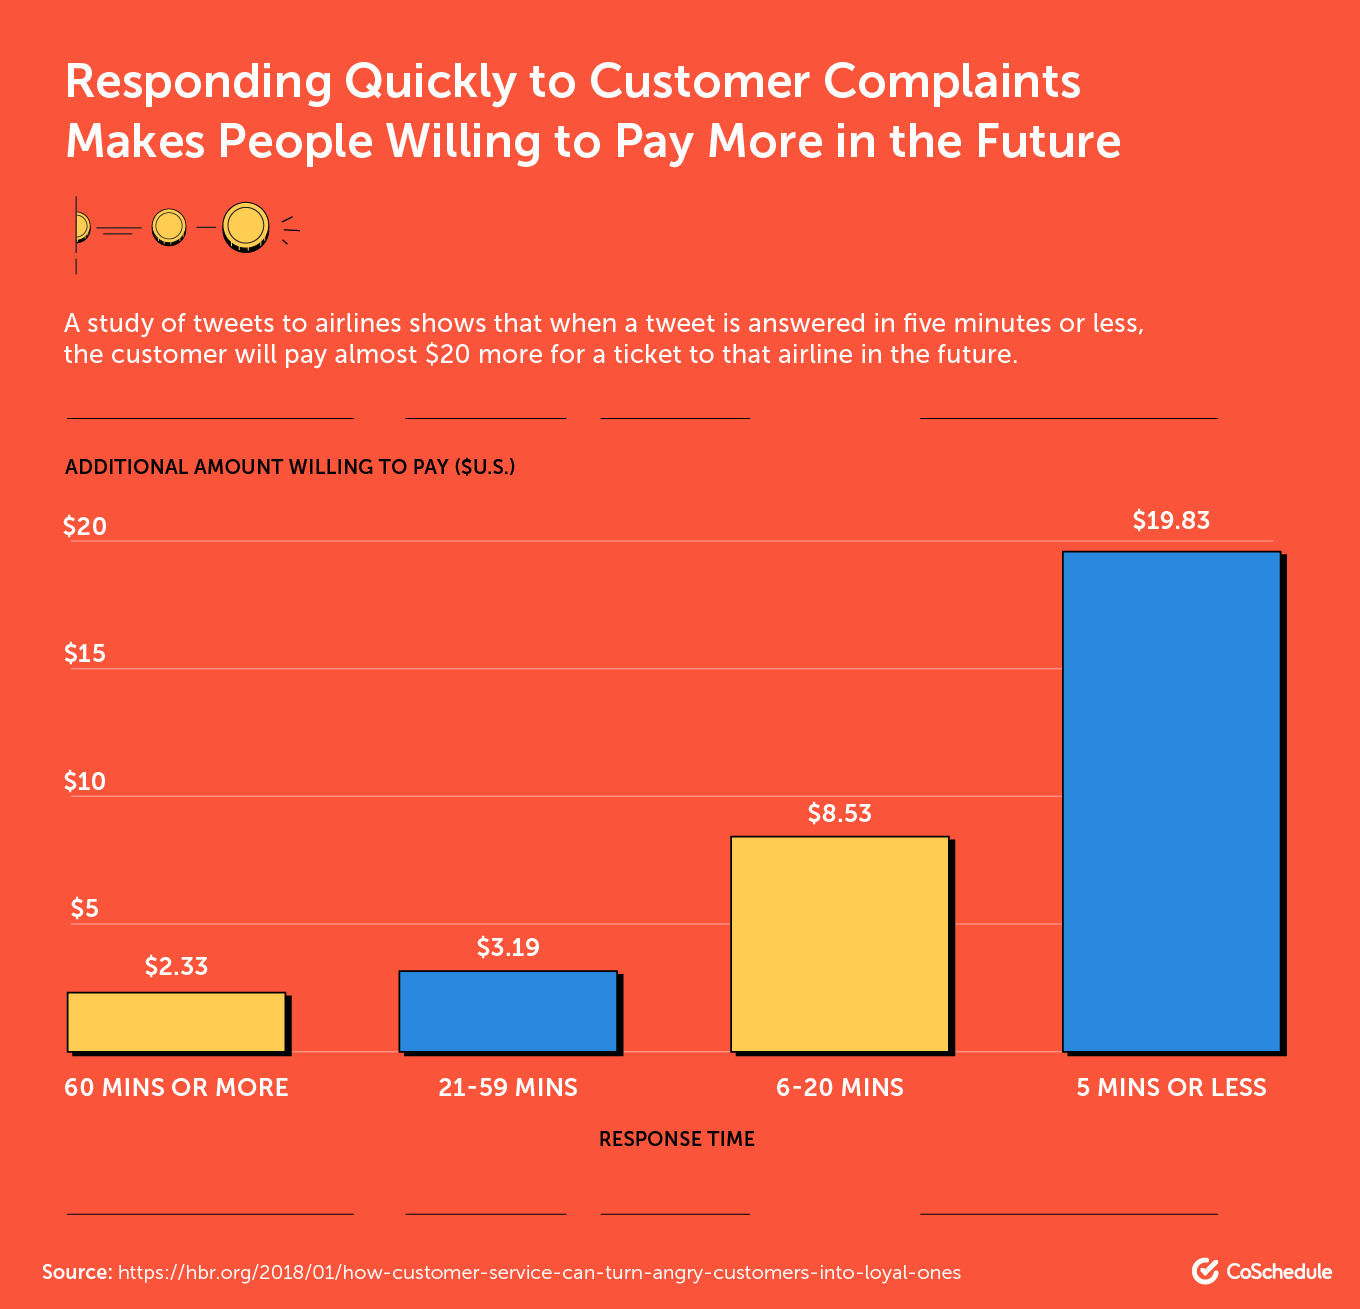 Responding Quickly to Customer Complaints Makes People Willing to Pay More in the Future